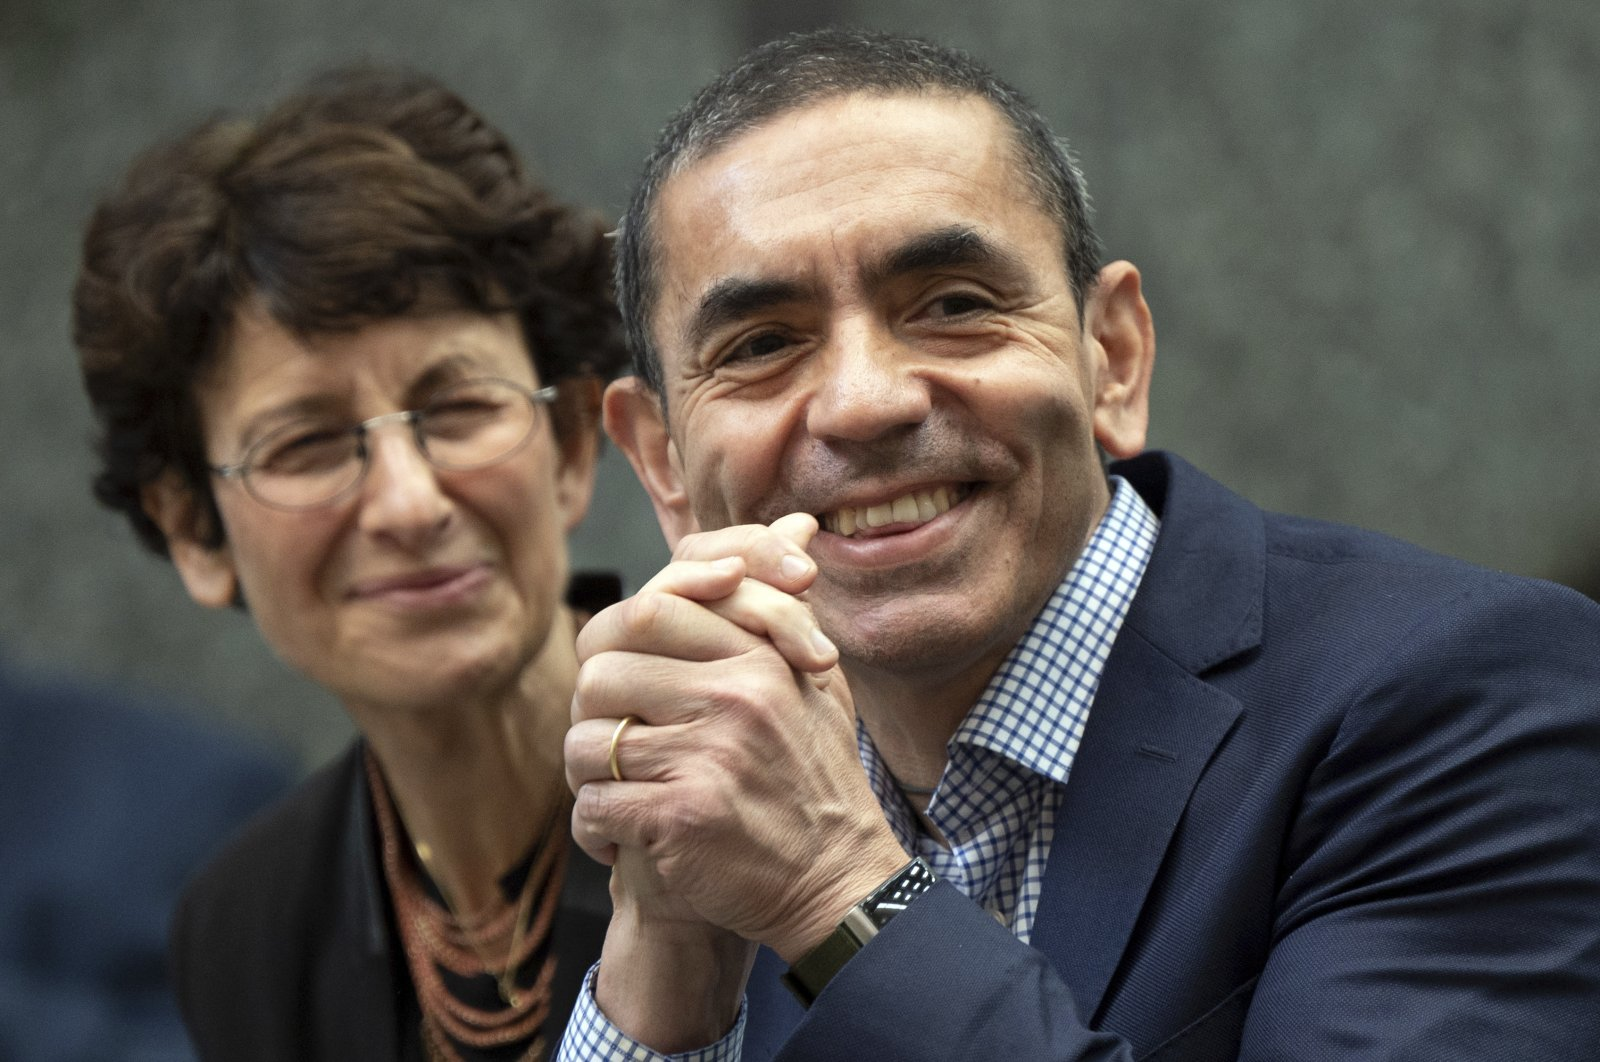 Özlem Türeci (L) and Uğur Şahin sit in the front row in Cologne, Germany, Sept. 17, 2021. (AP Photo)